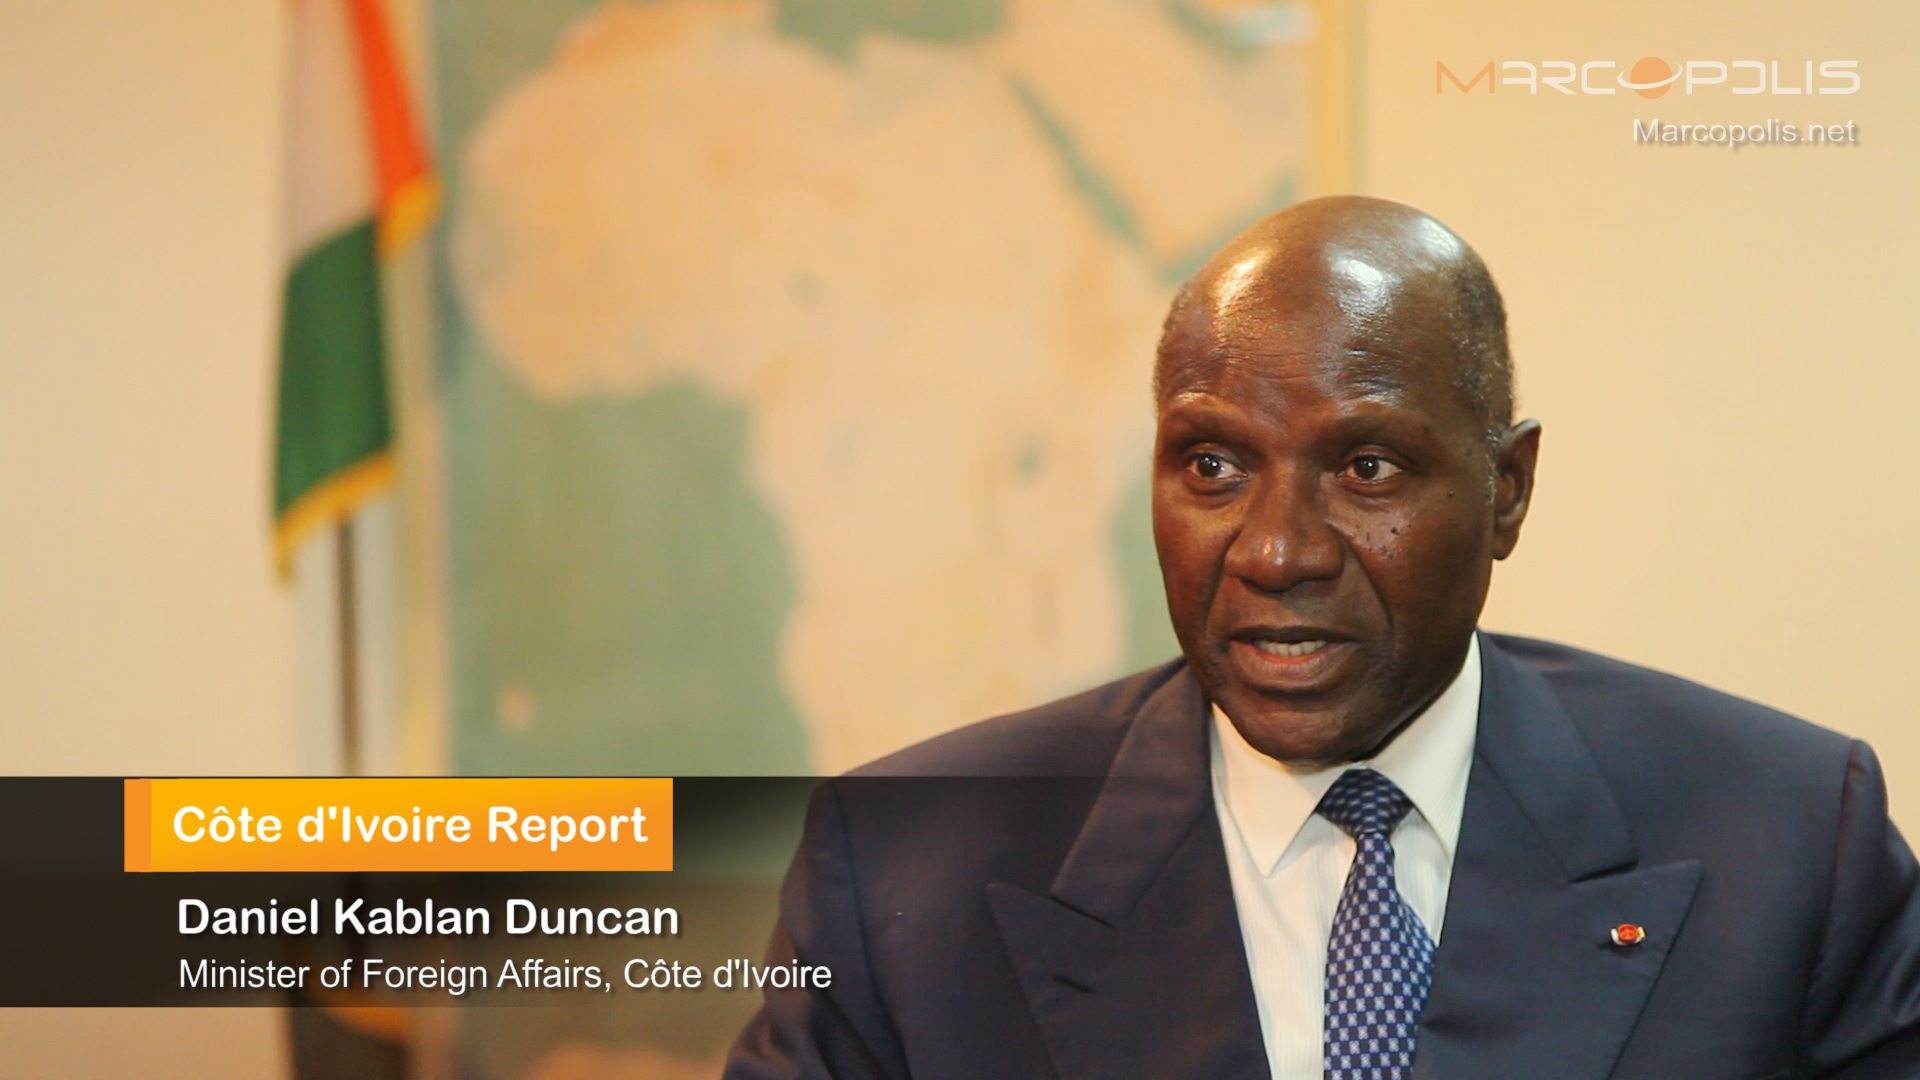 Côte d'Ivoire Foreign Policy: Emerging Country by 2020 and Double Digit Growth